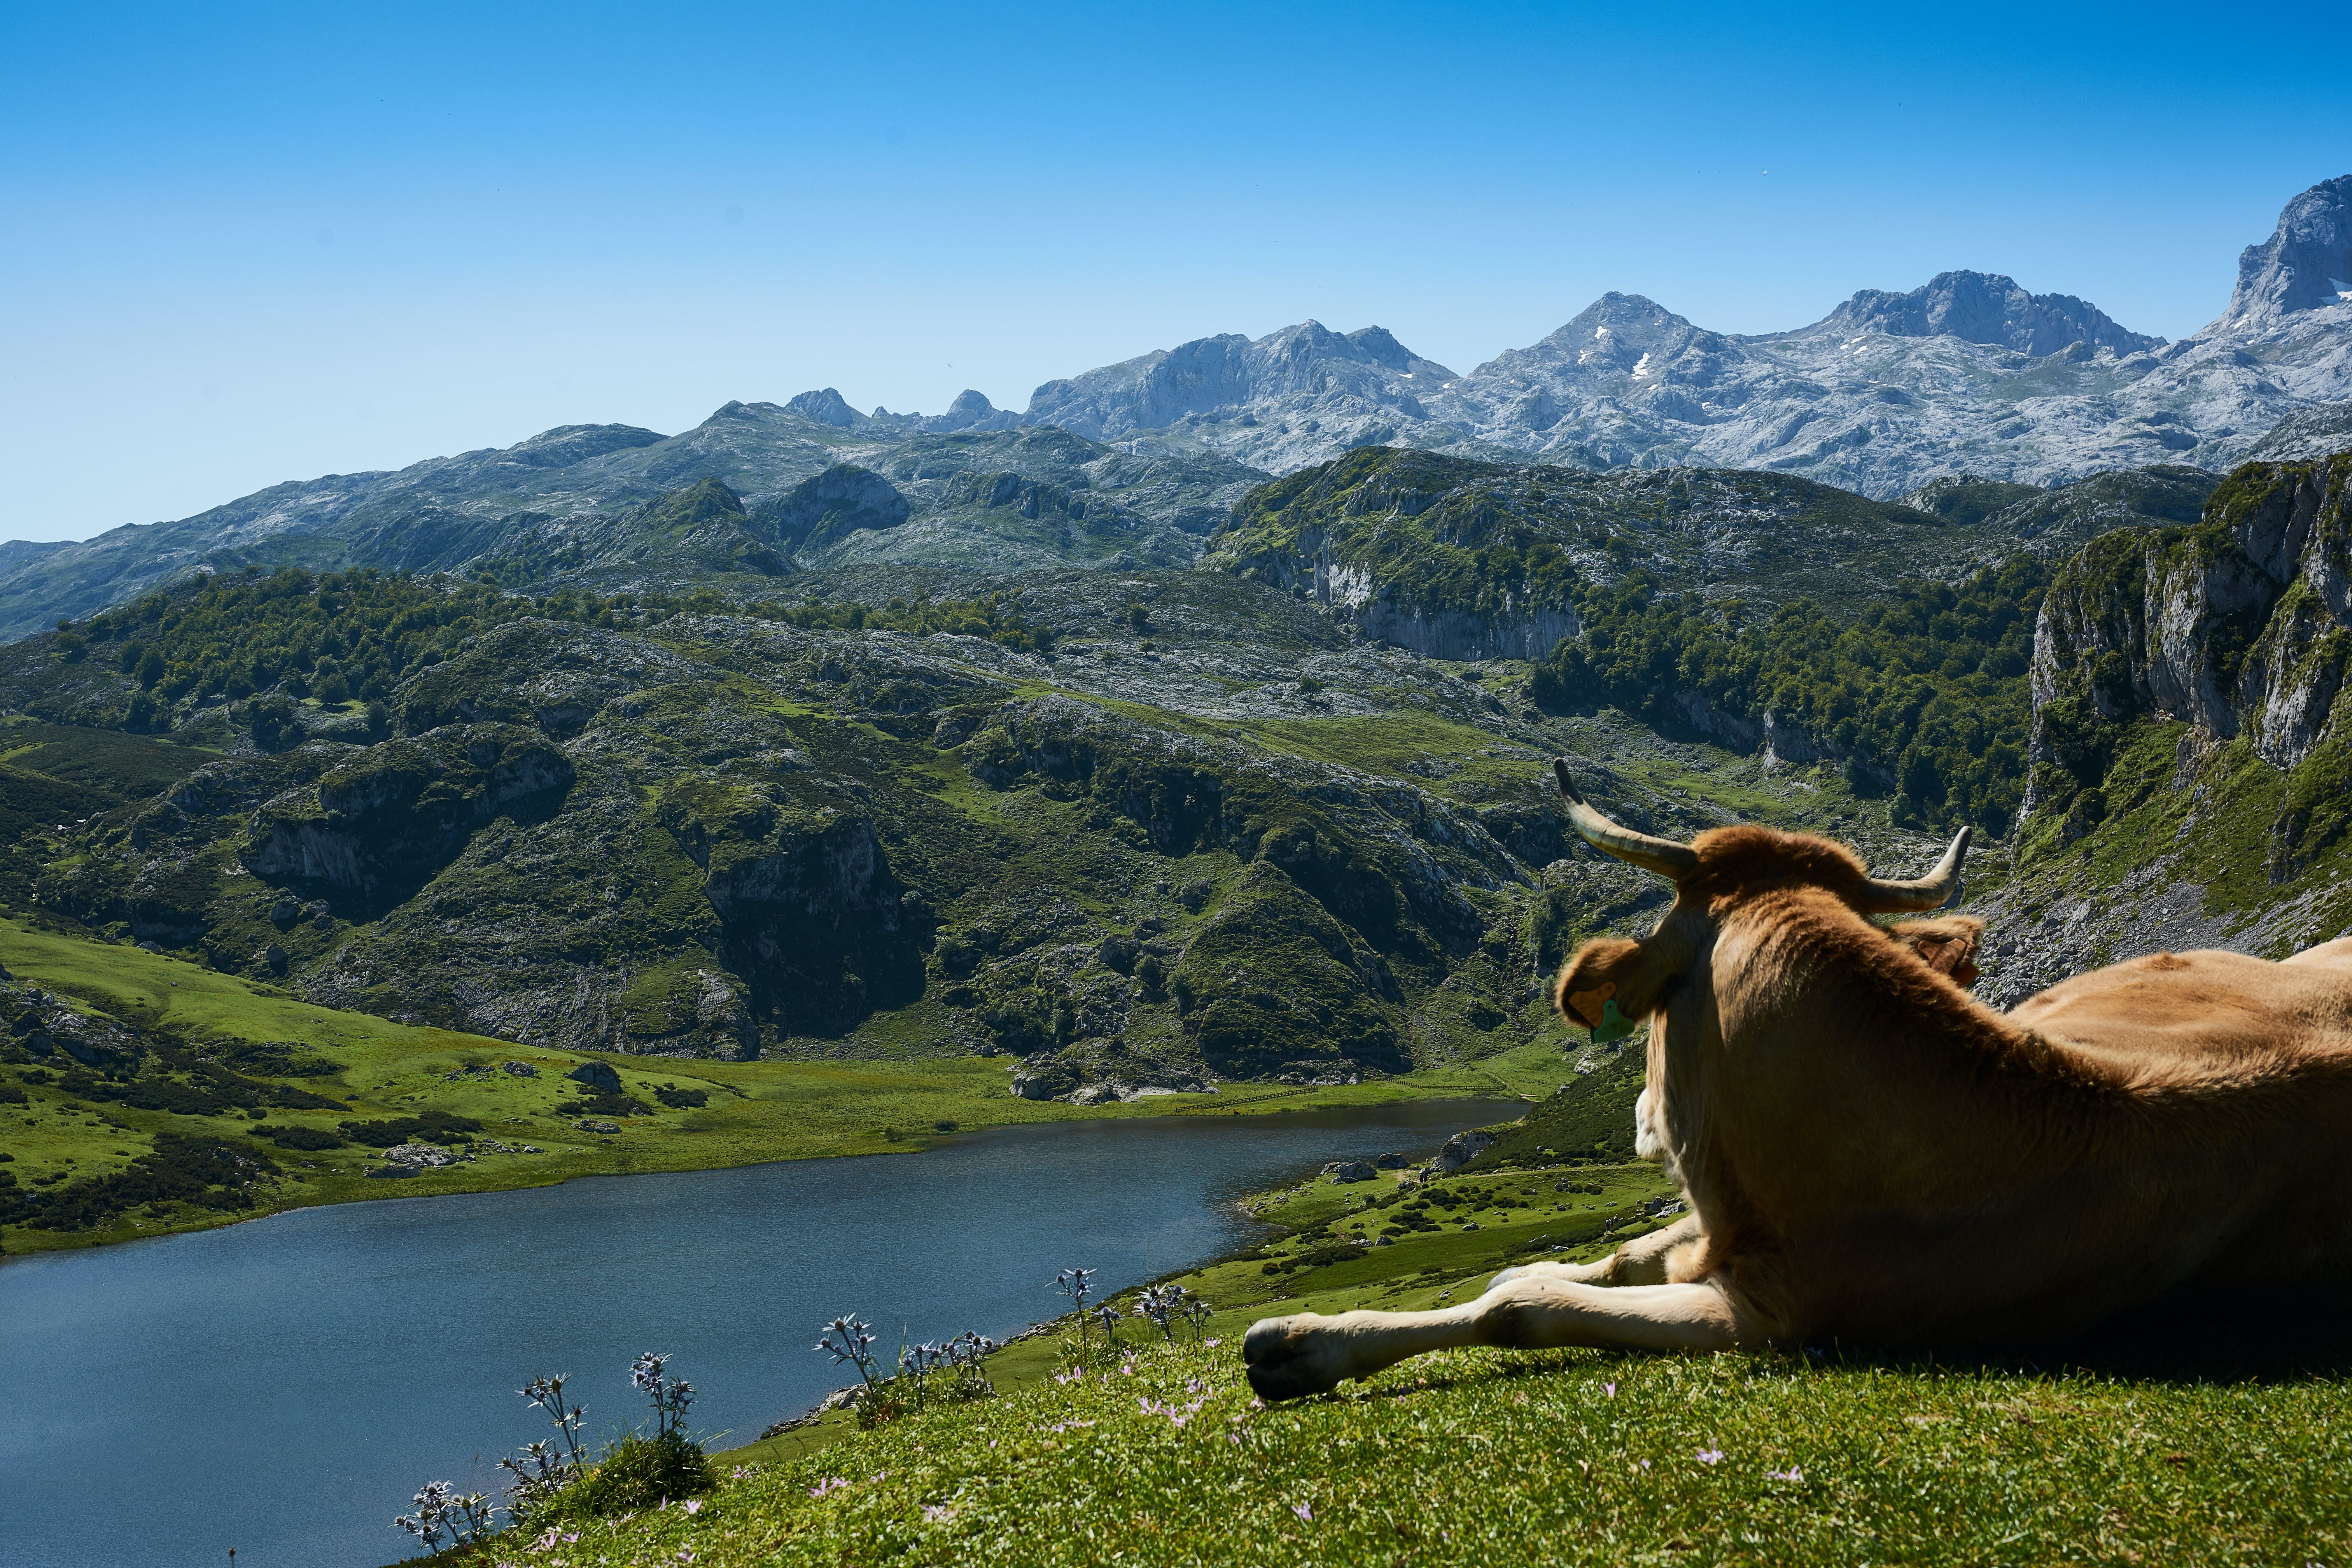 Brown Cattle Lying on Grass Field Watching Body of Water Surrounded by Mountains